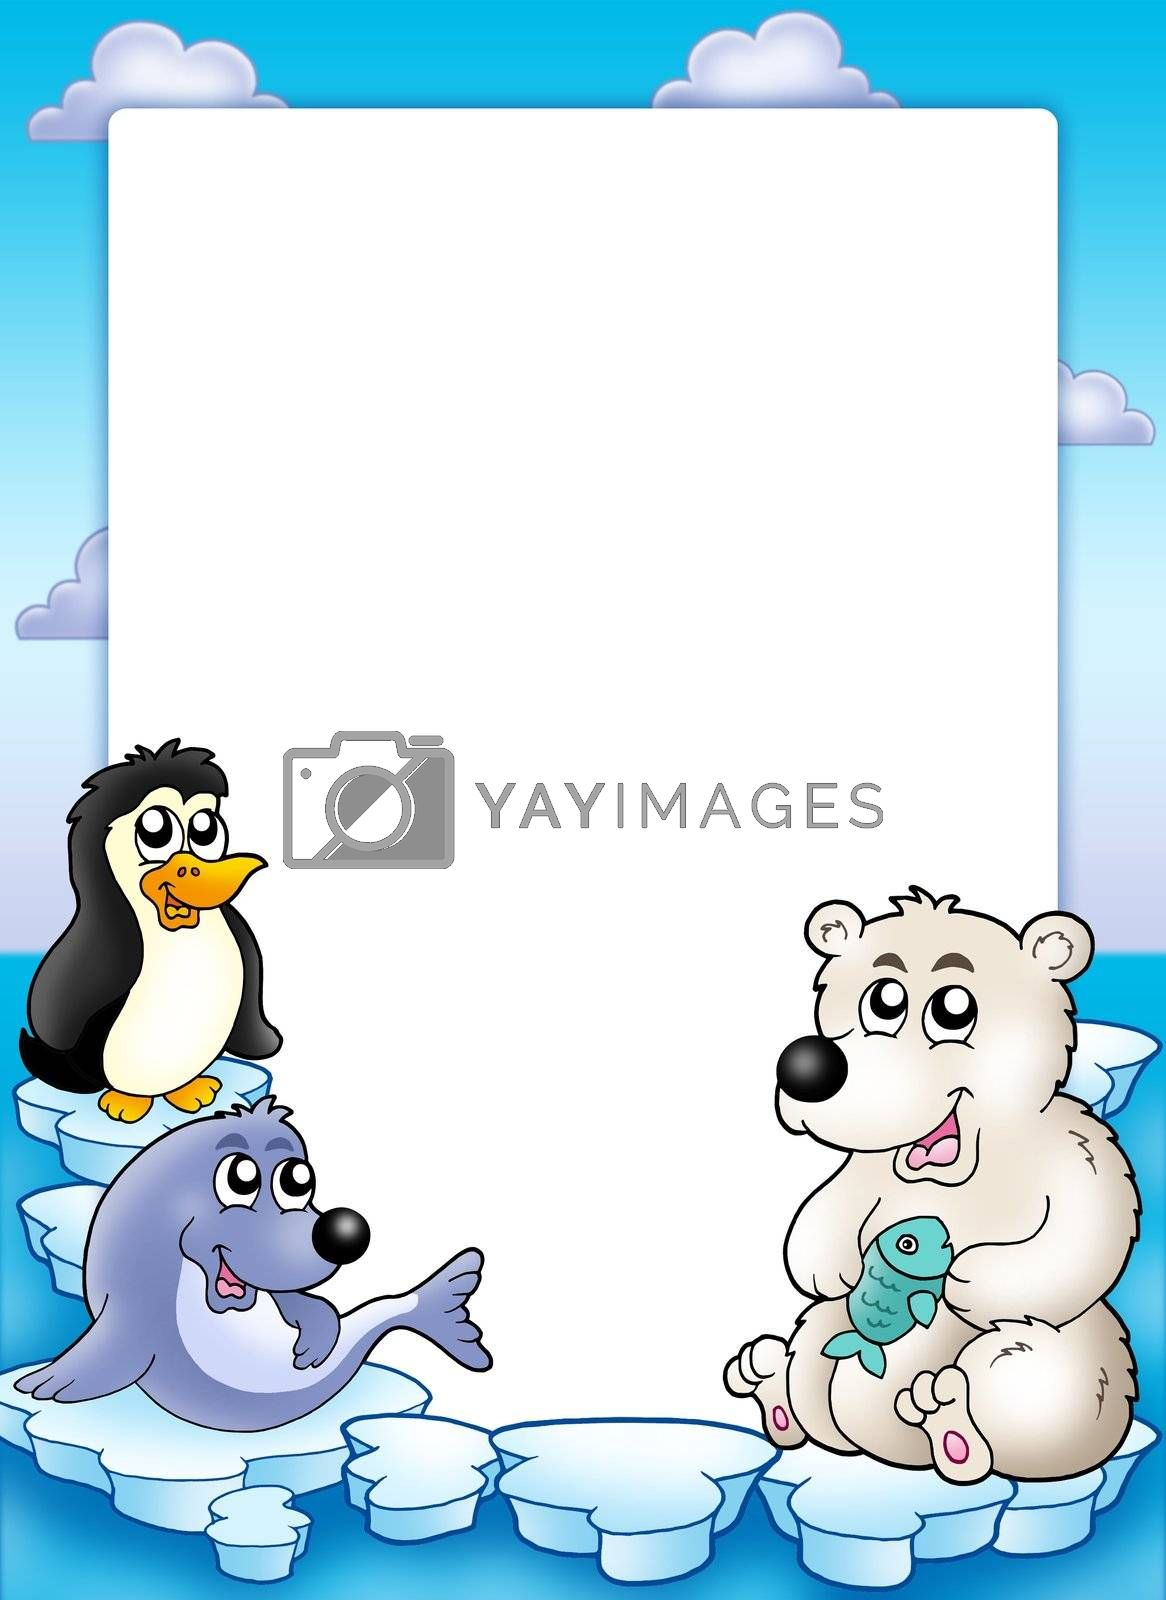 Frame with winter animals - color illustration.